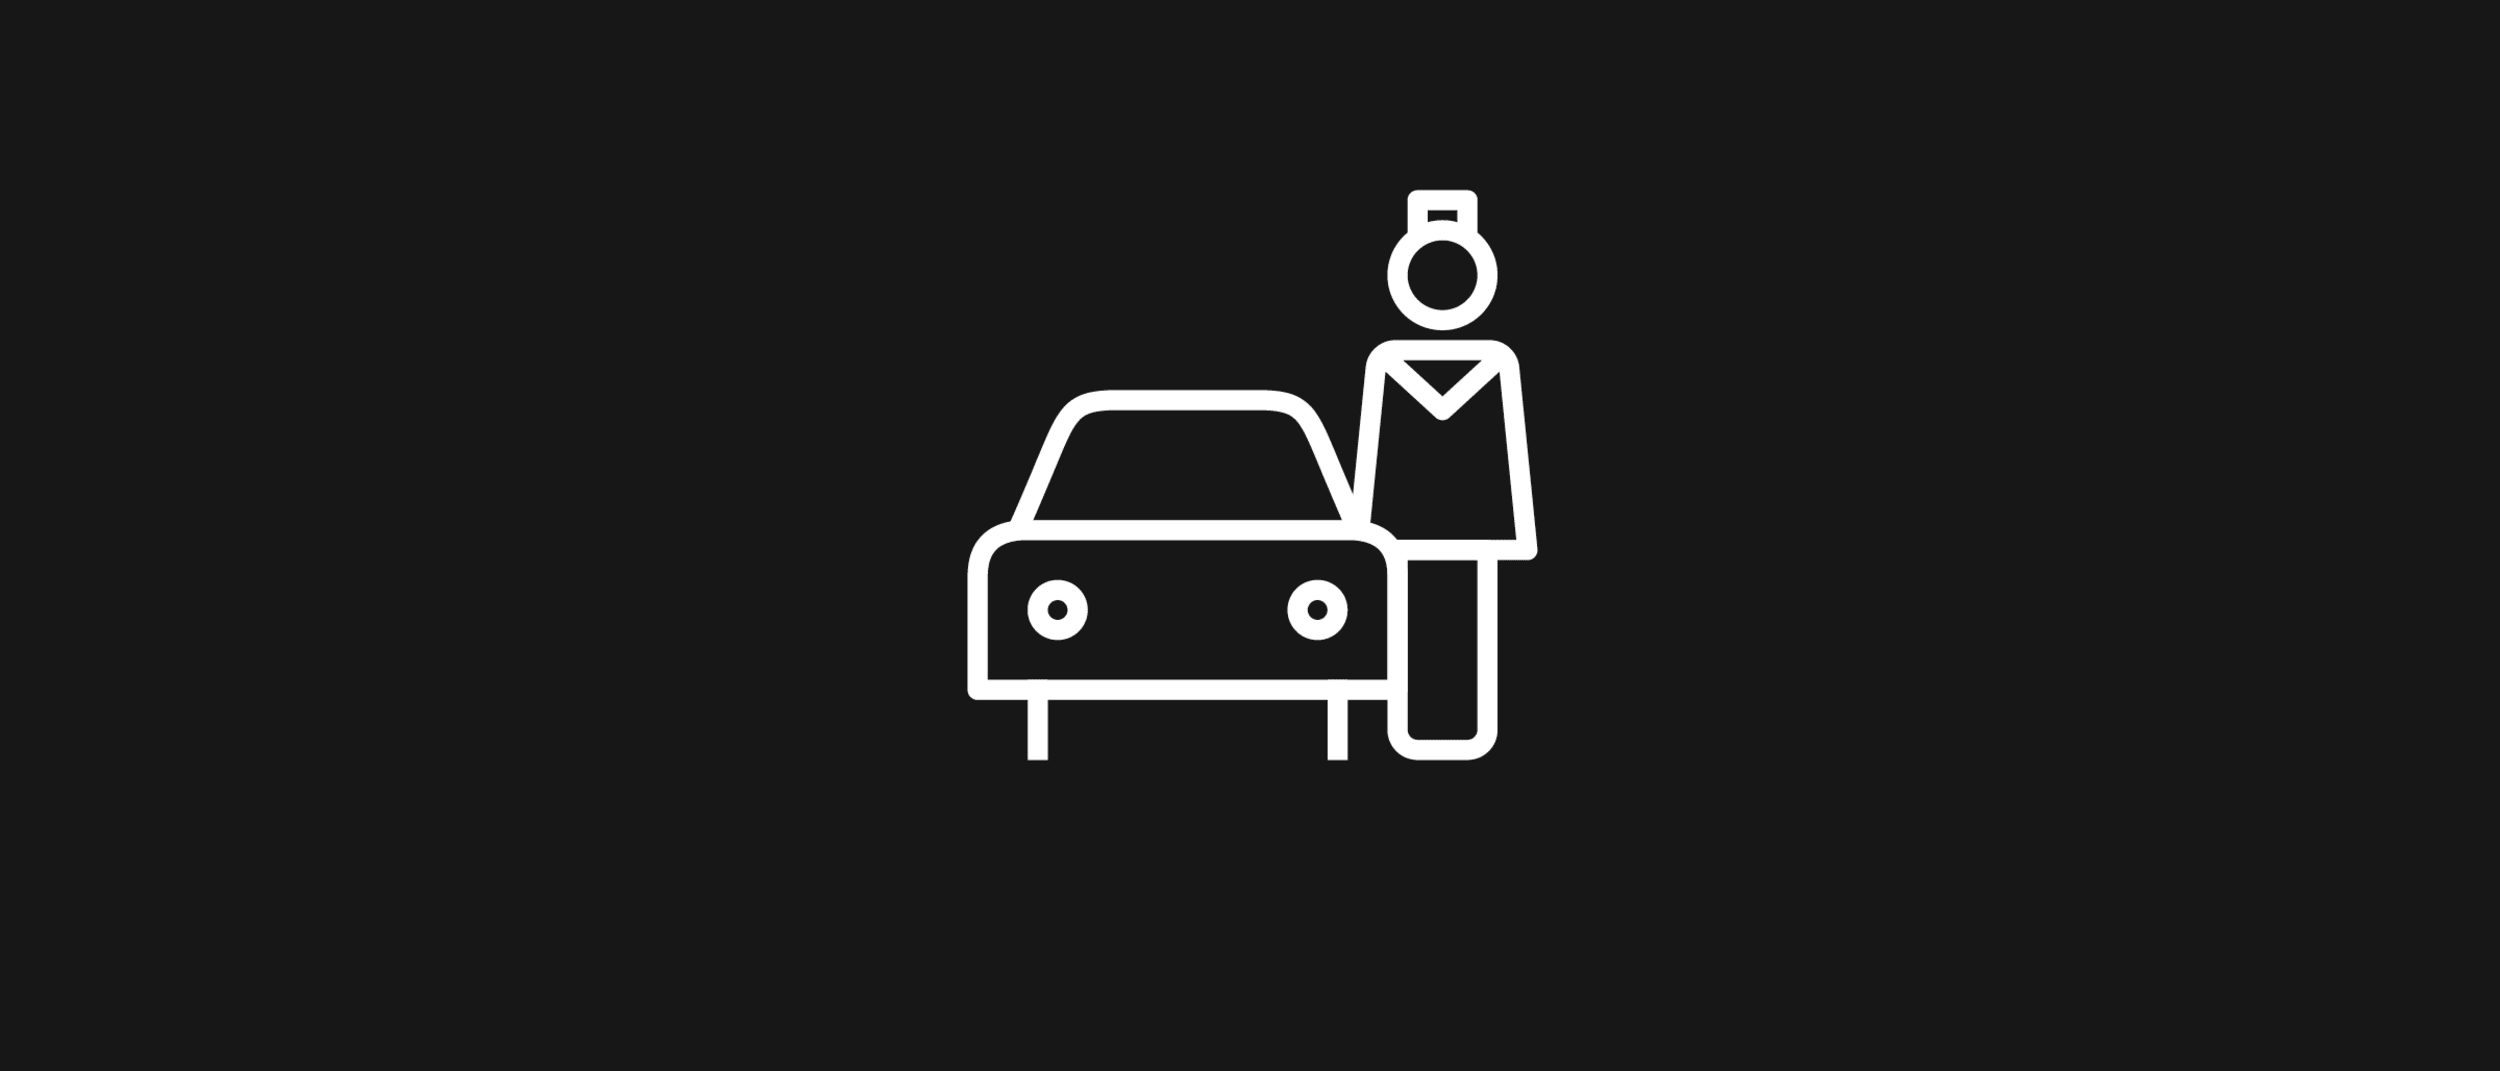 Valet has launched!